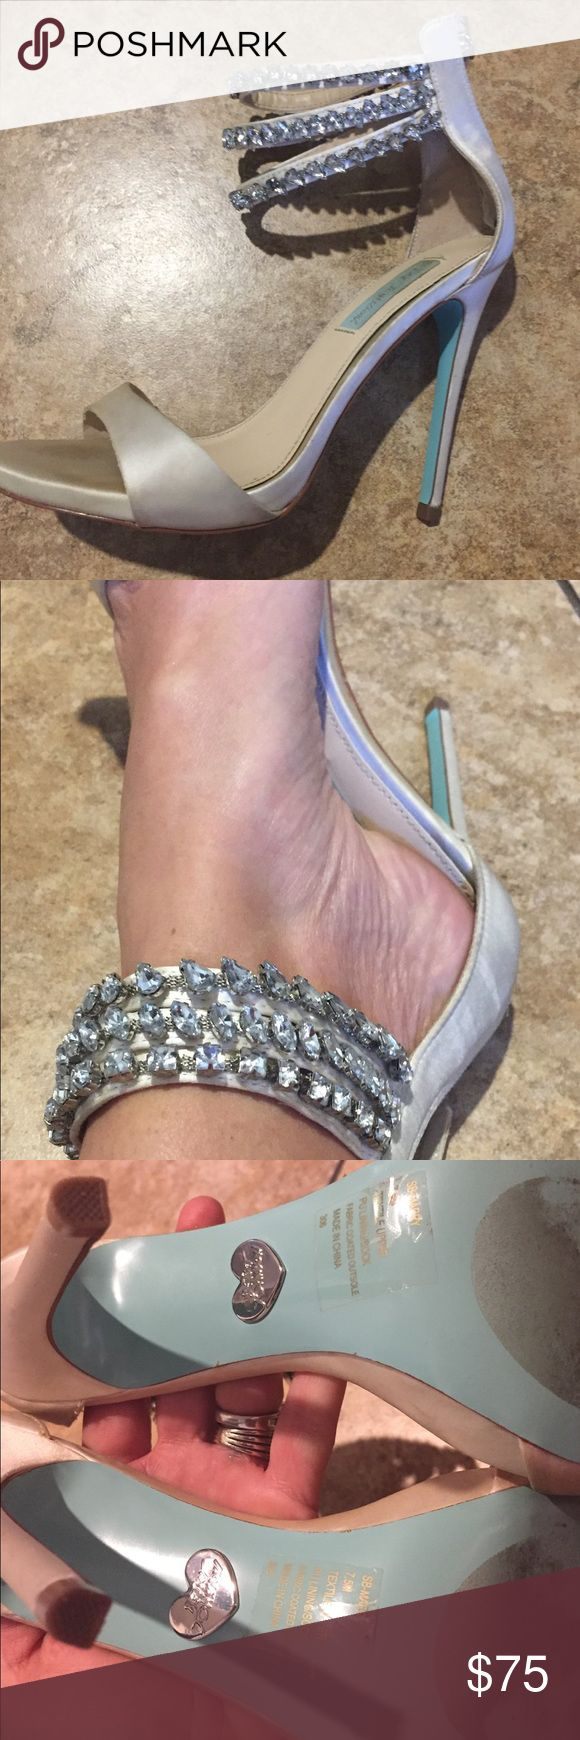 BETSEY JOHNSON BLUE SHOE 7.5 BEAUTIFUL, CRYSTAL, RHINESTONE, STRAPPY HIGH HEEL WEDDING, SPECIAL OCCASION, HOLIDAY IVORY BETSEY JOHNSON BLUE SHOE SIZE 7.5... PAID $140, WORE FOR 45 MINUTES ON MY WEDDING DAY... SO MANY COMPLIMENTS Betsey Johnson Shoes Heels